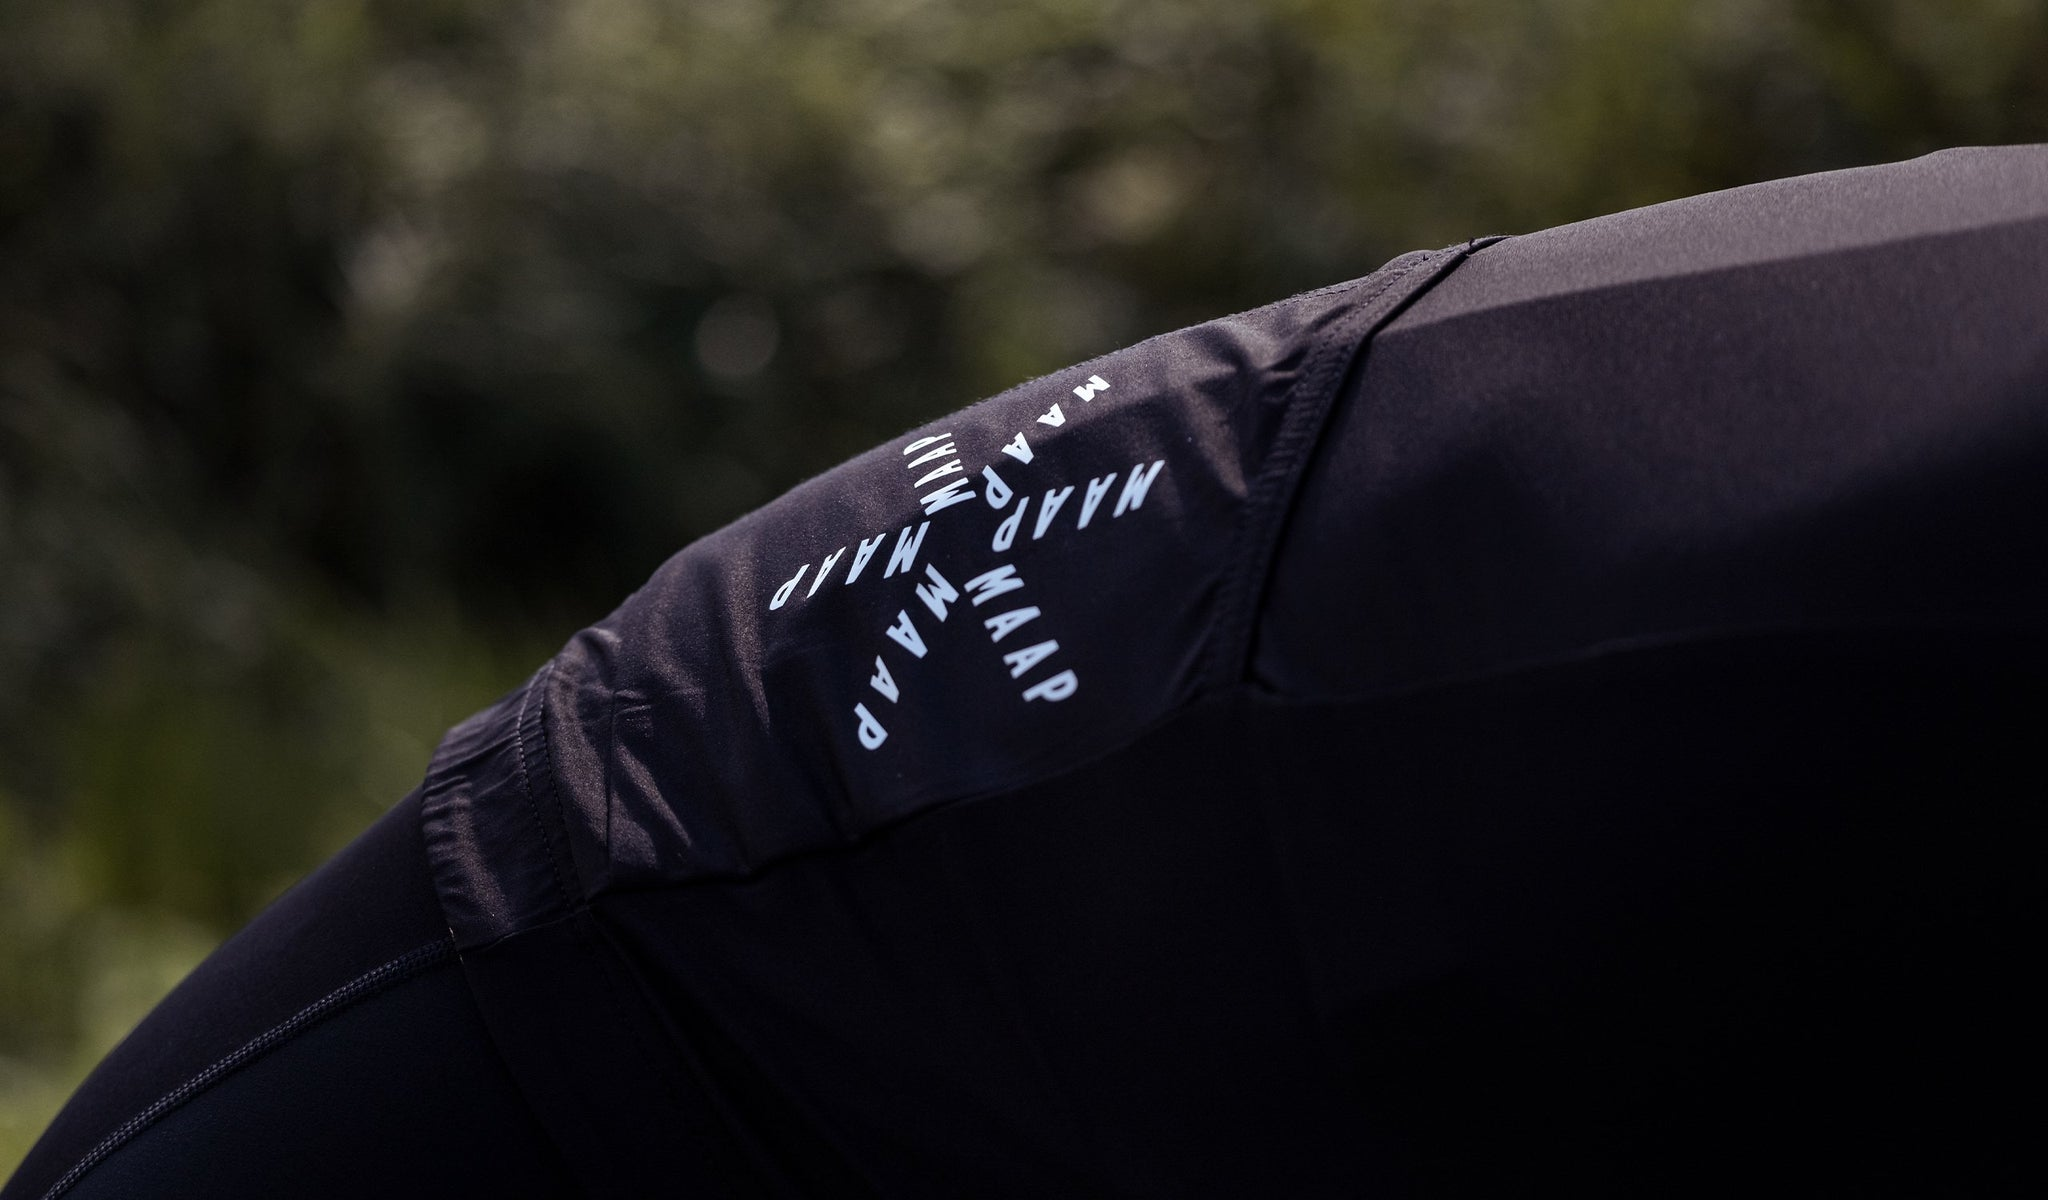 MAAP Training Short Sleeve Cycling Jersey in Black for everyday riding.